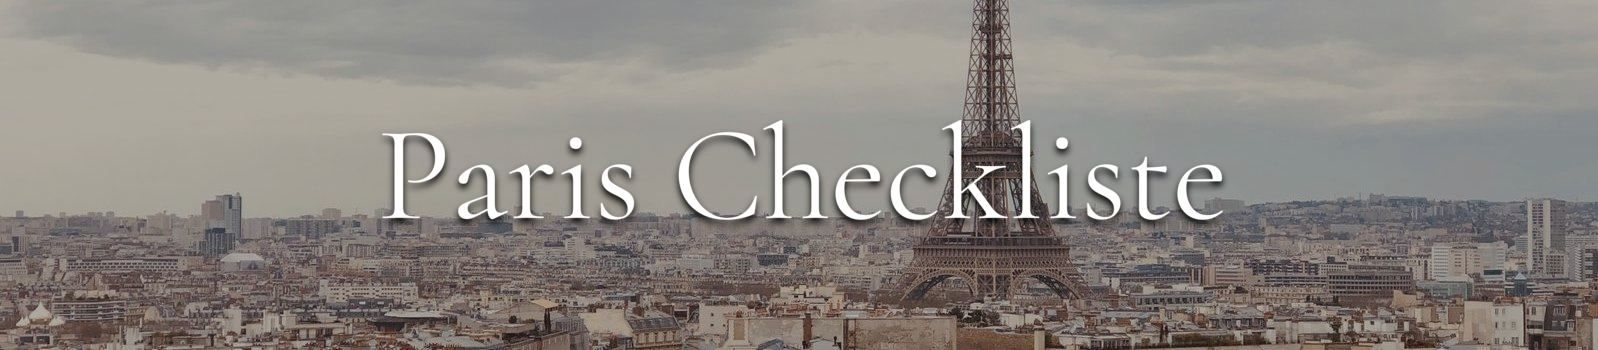 Paris Checkliste, Eiffeltrum, Skyline